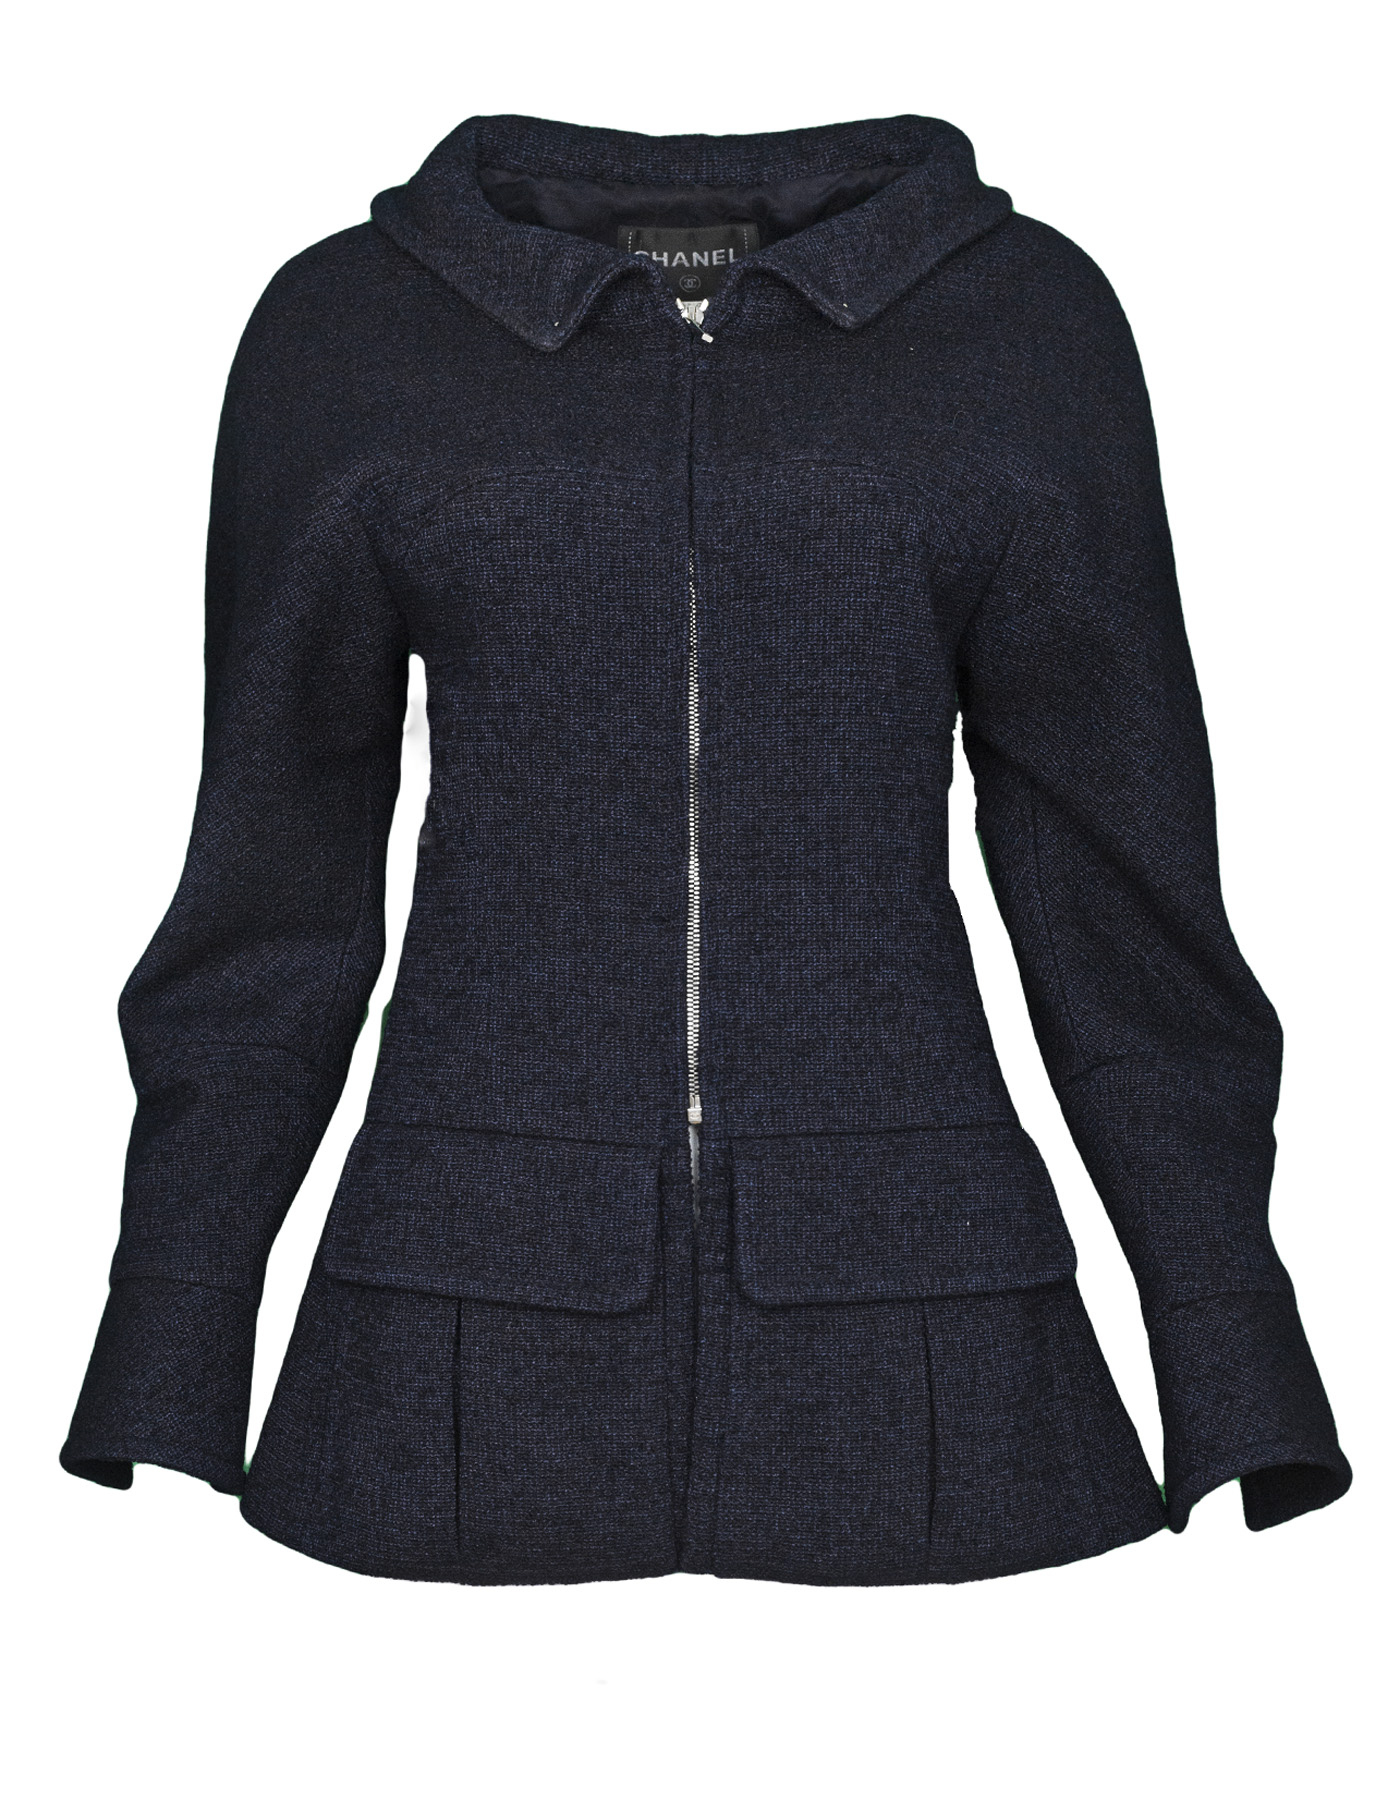 CHANEL 2012 navy zip up jacket w buttons 100-11713 5.jpg